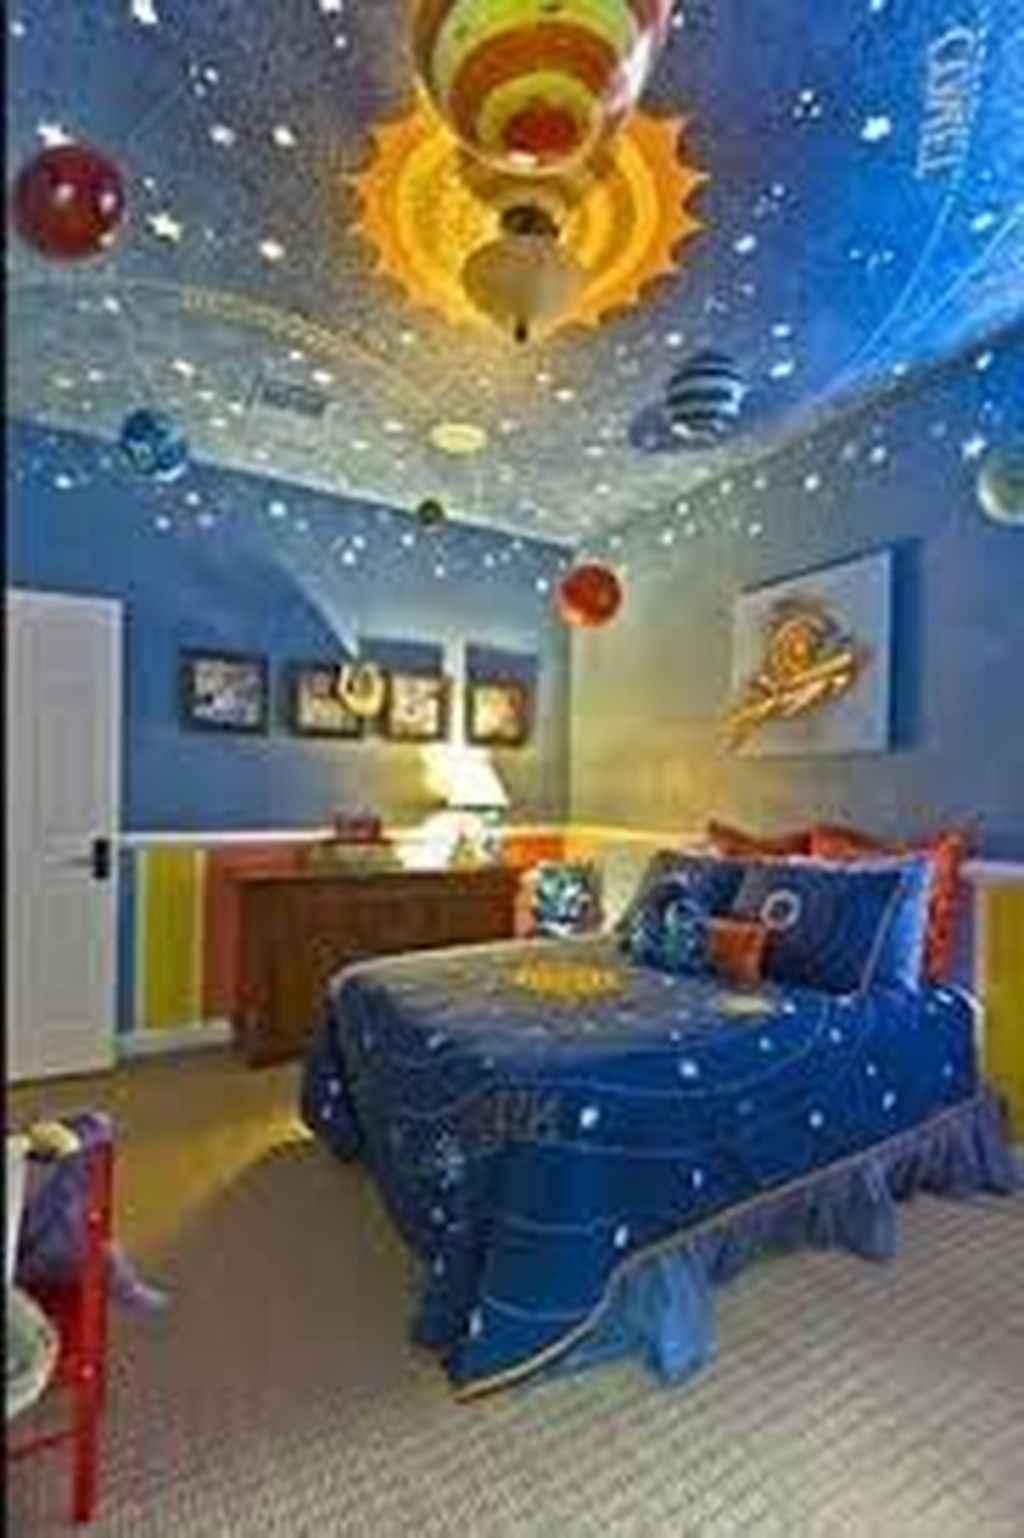 20 Inspiring Outer Space Themed Bedroom Ideas For Boys Space Themed Bedroom Space Themed Room Themed Kids Room